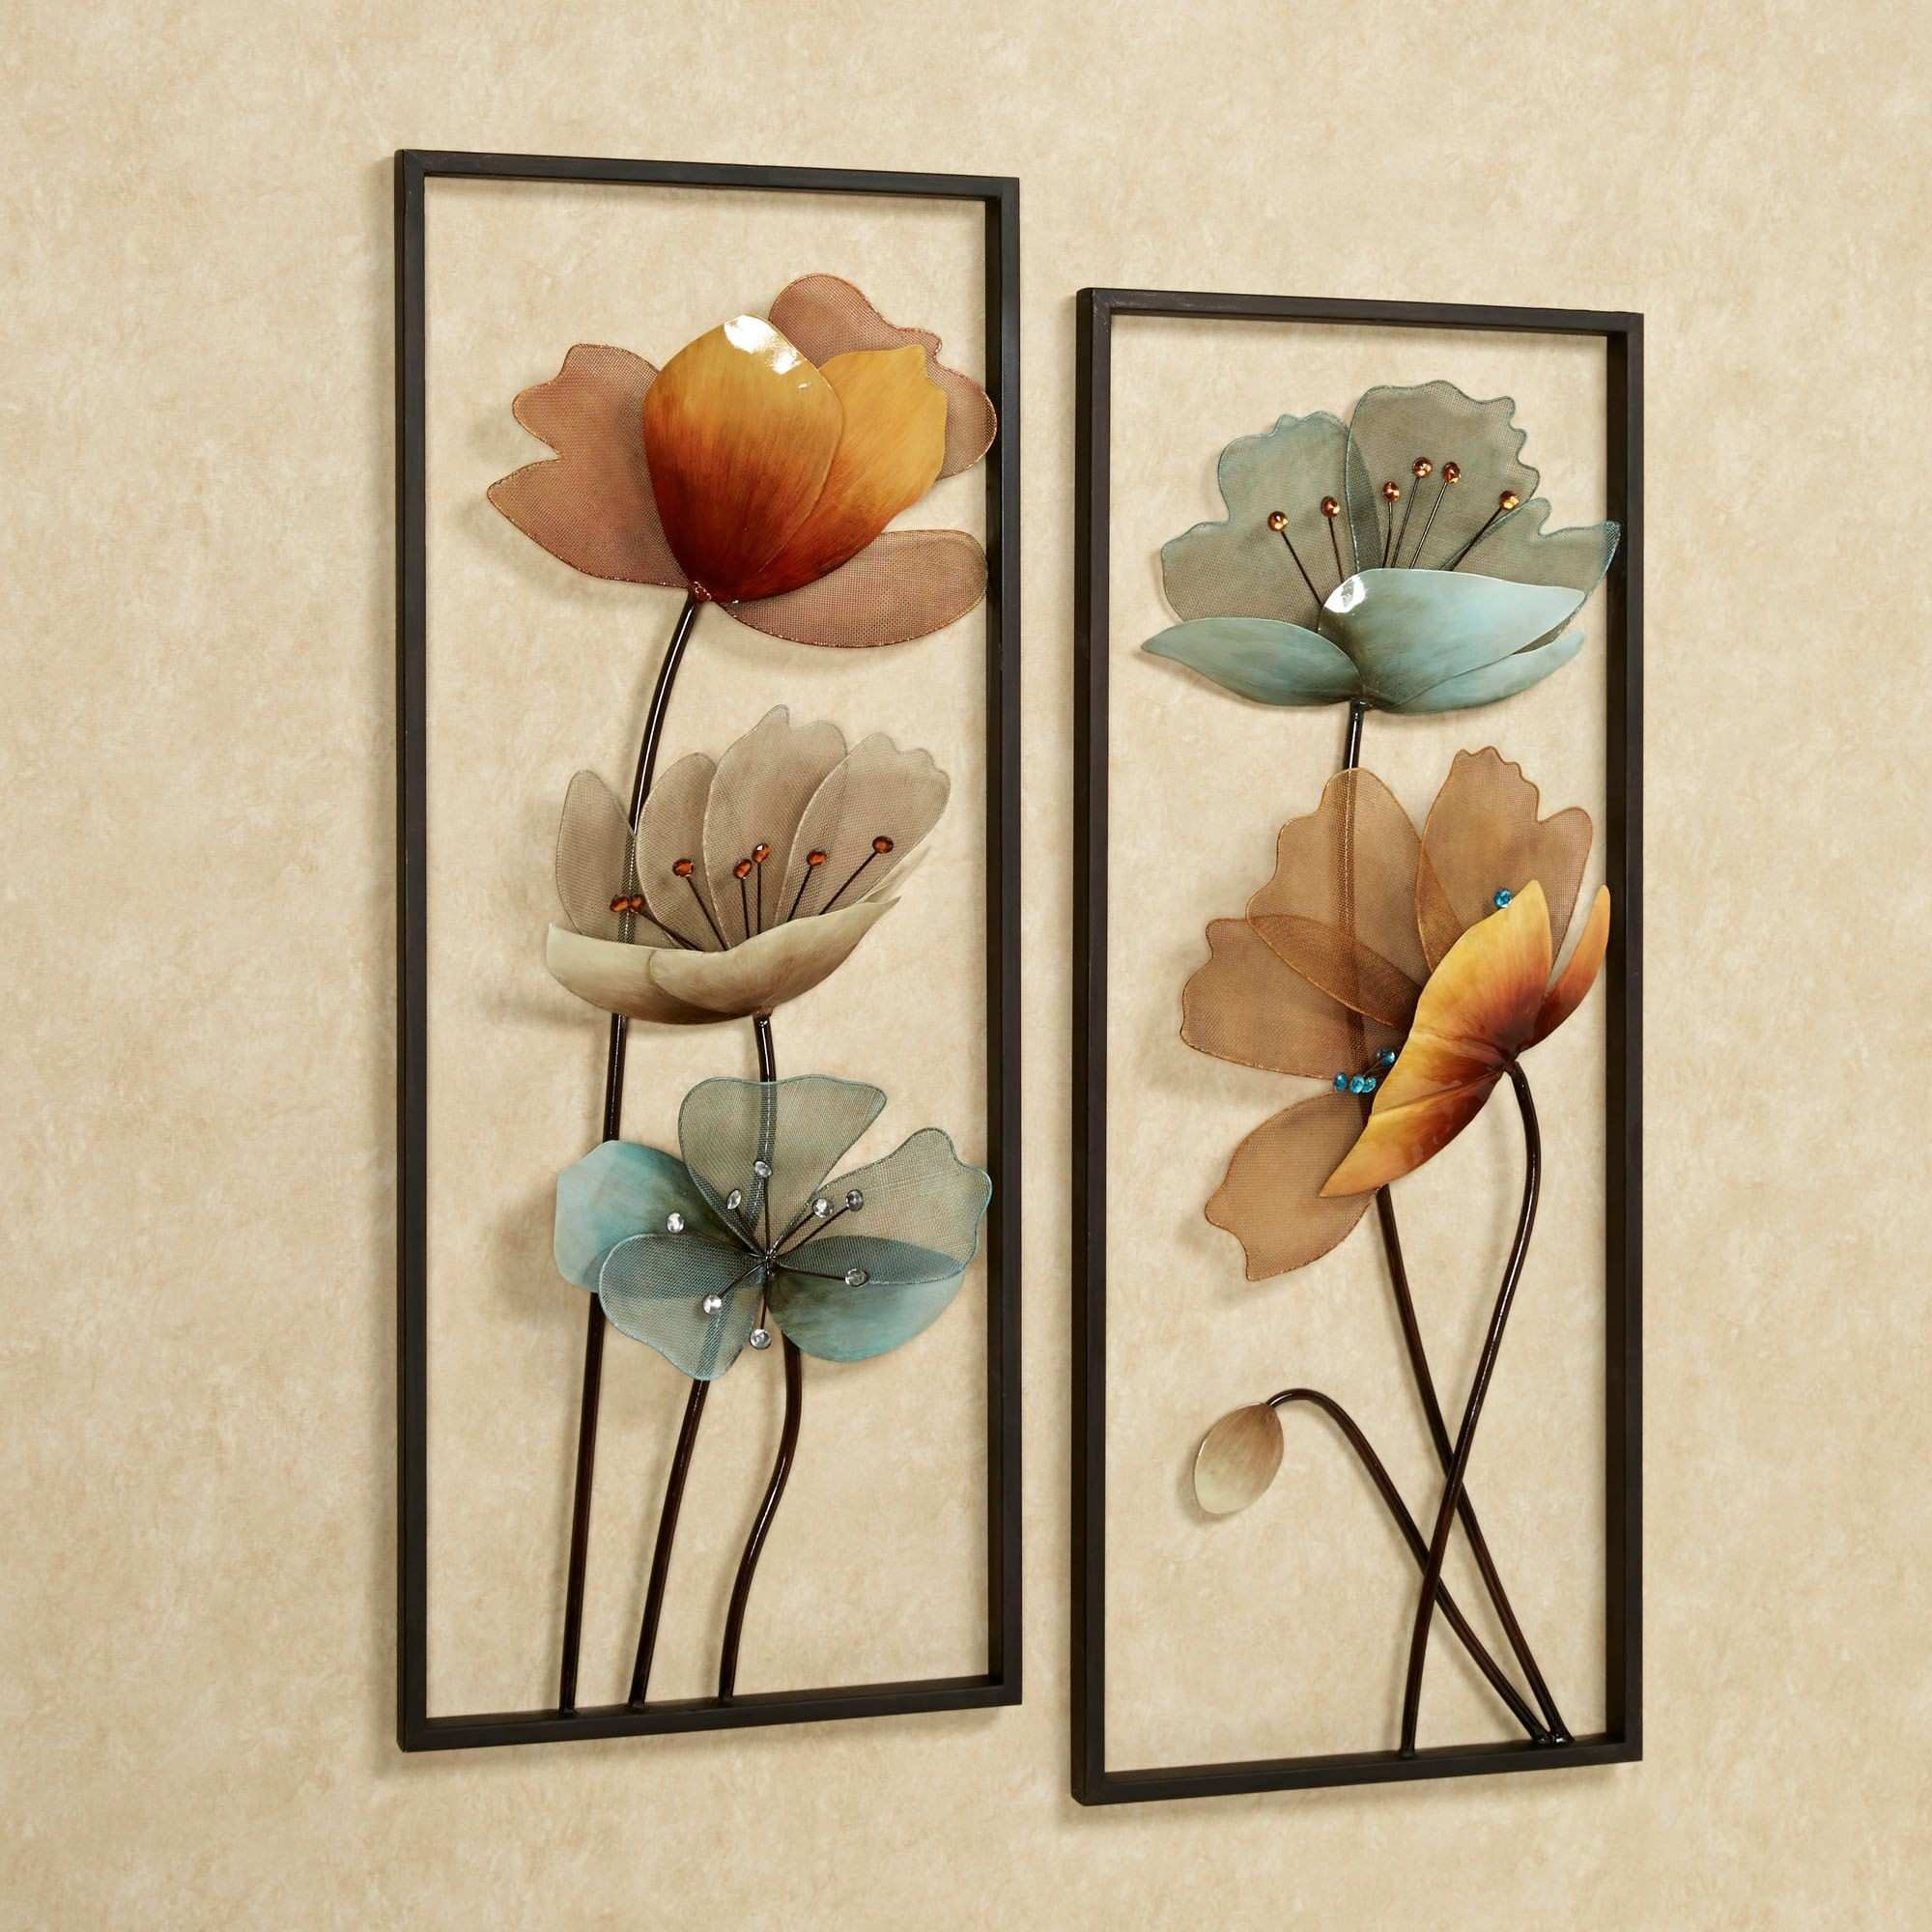 Oil Rubbed Bronze Wall Decor New Tuscany In Bloom Floral Metal Wall Art Set Pinterest